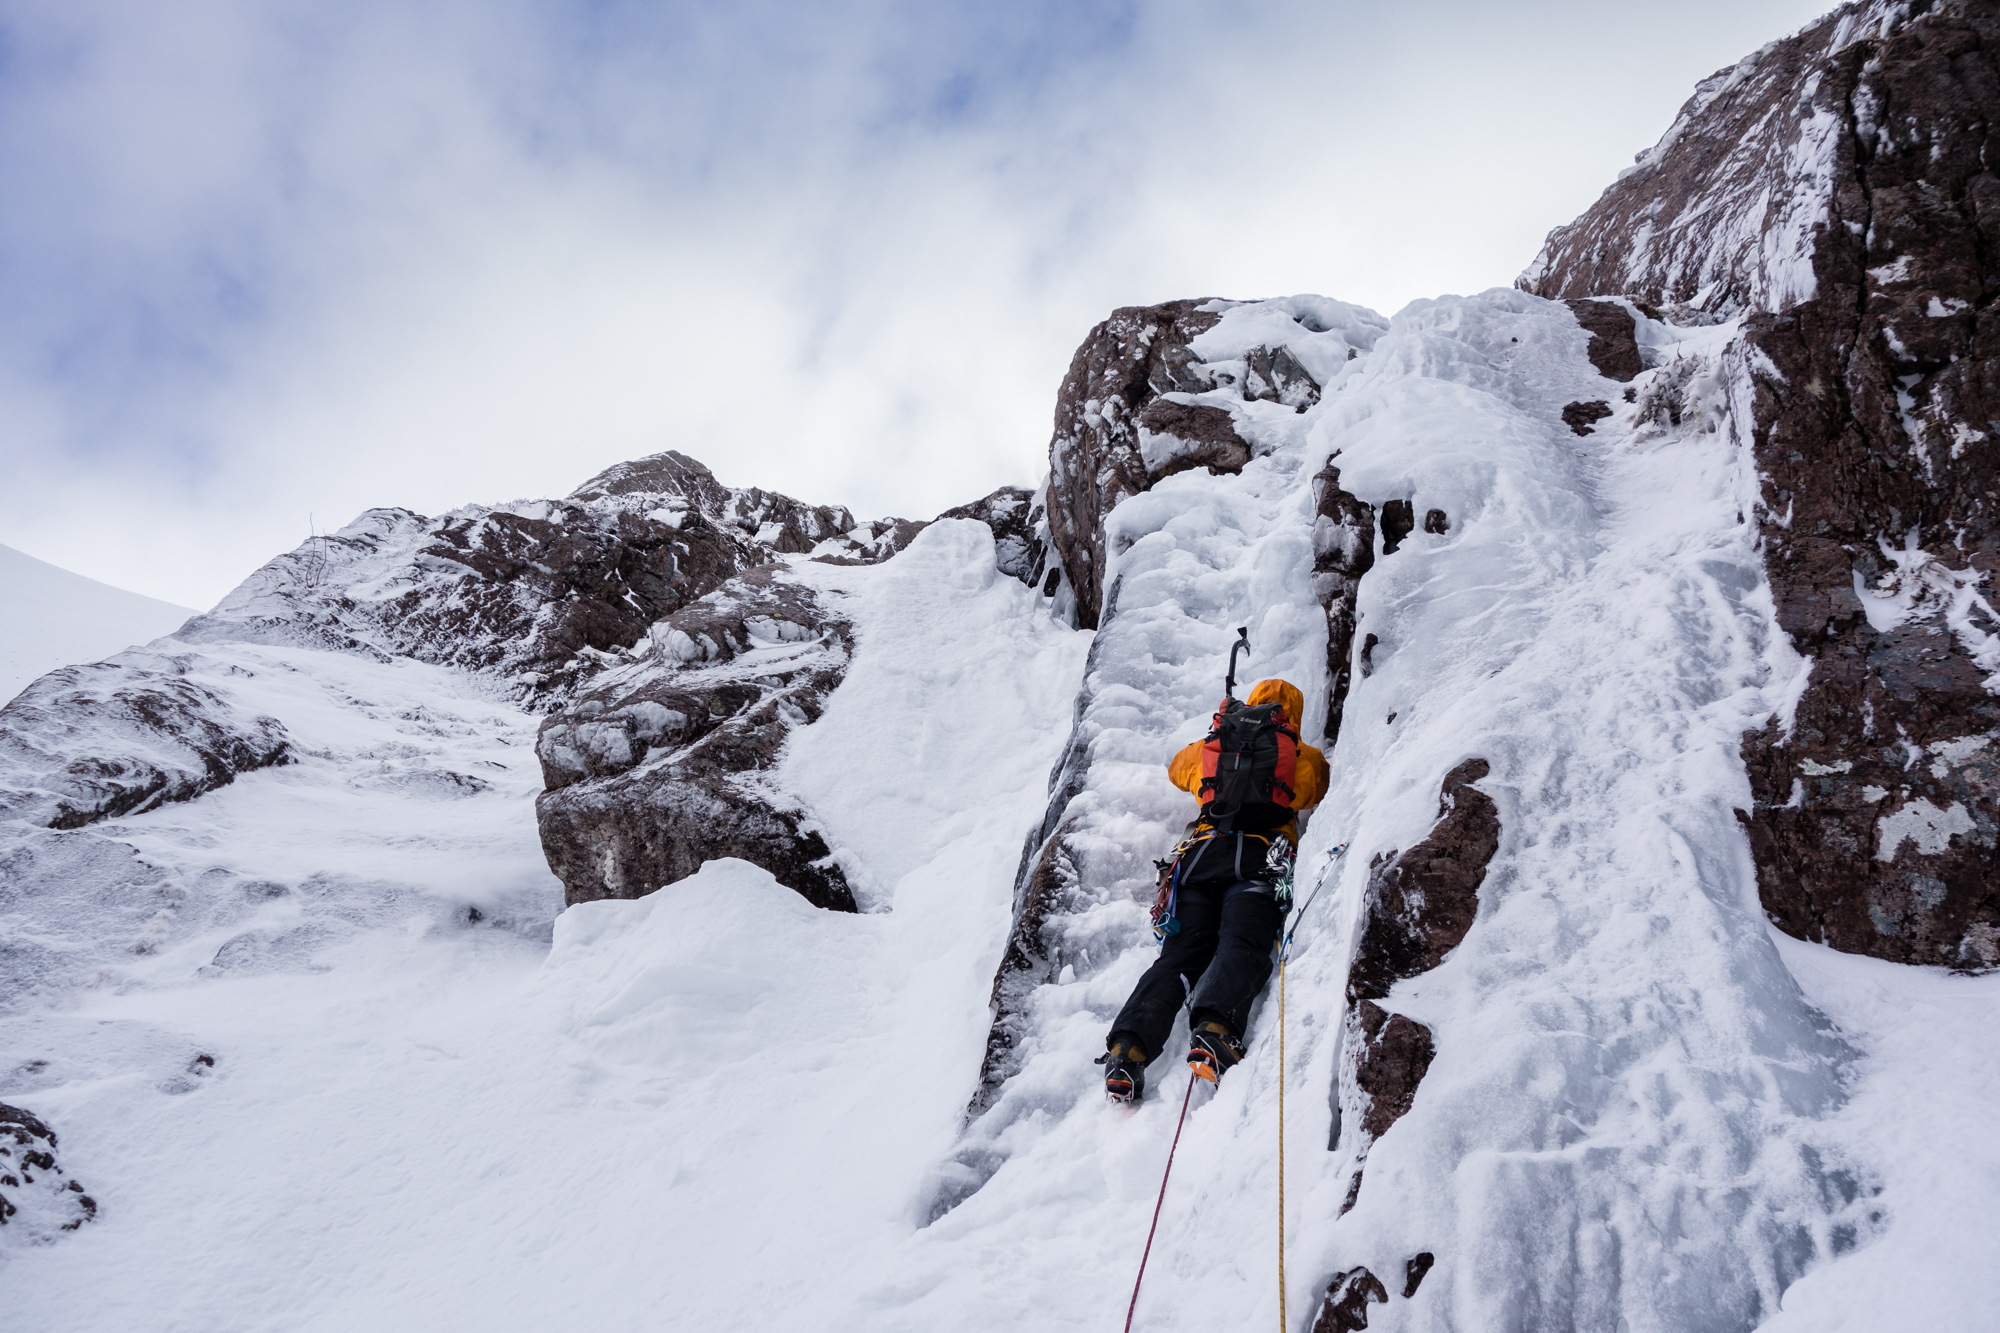 Ric lining up for the deceptively steep and awkward direct finish. The ice was chewy but a bit thin and picked out for reliable screws.